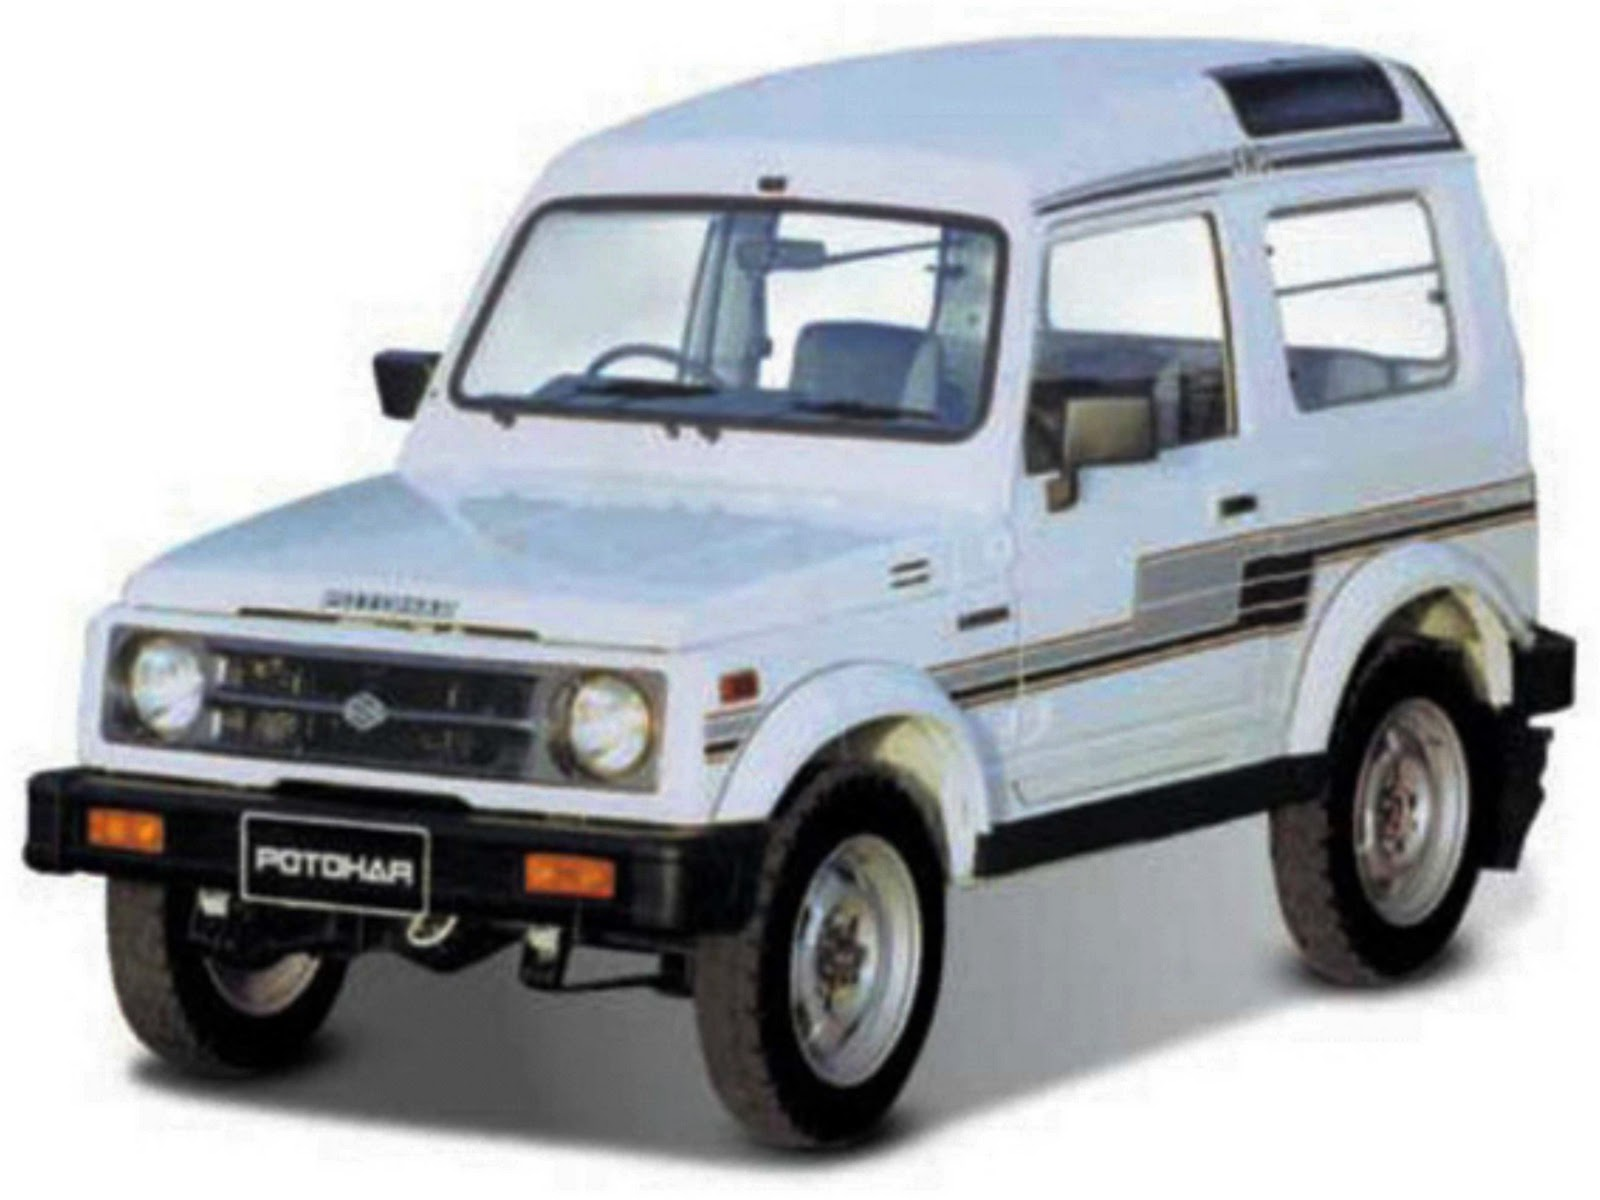 Suzuki Potohar Jeep Specifications